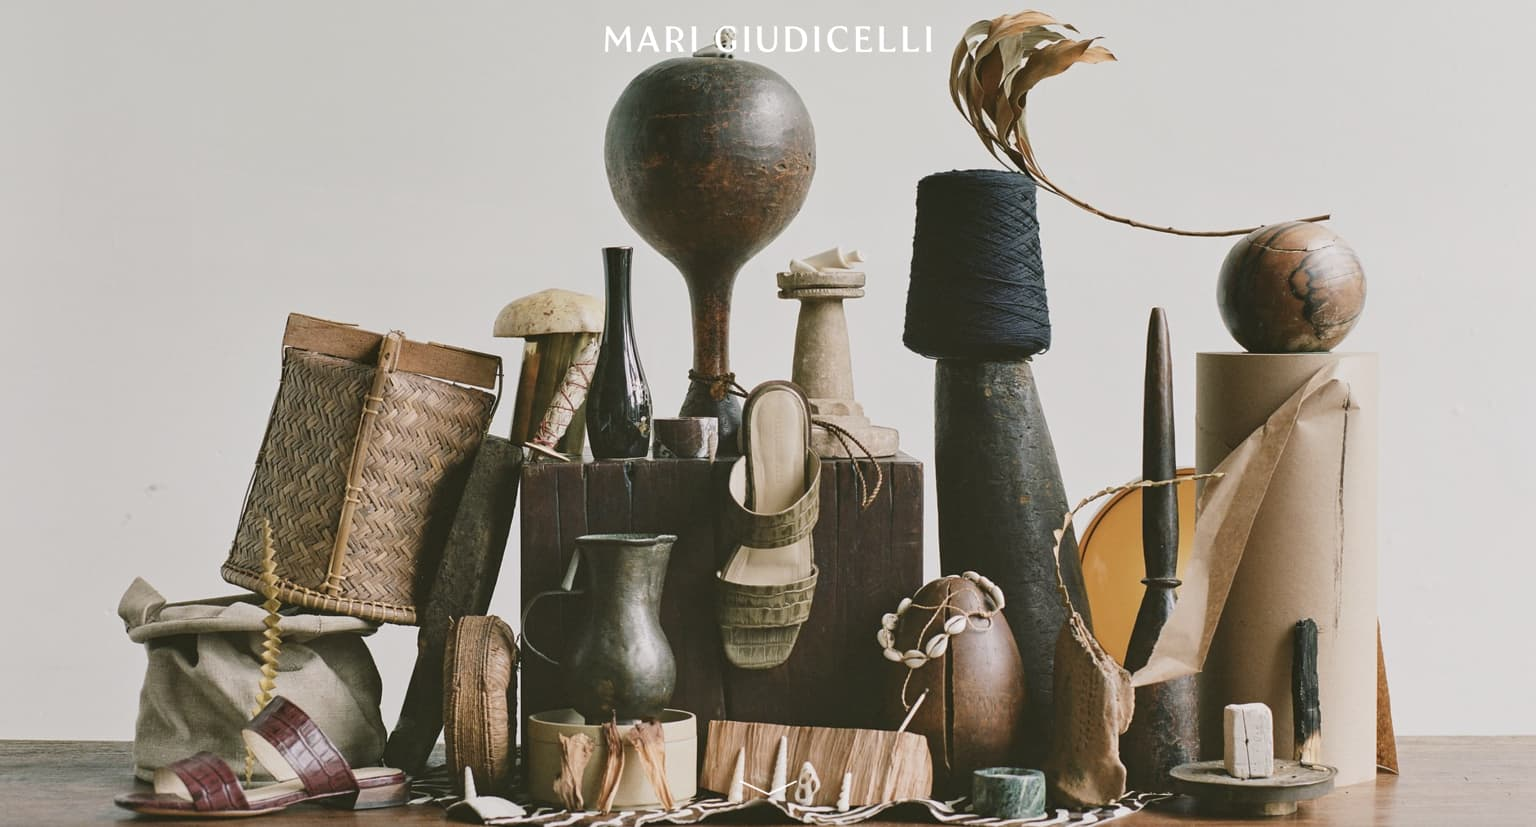 Mari Giudicelli Website